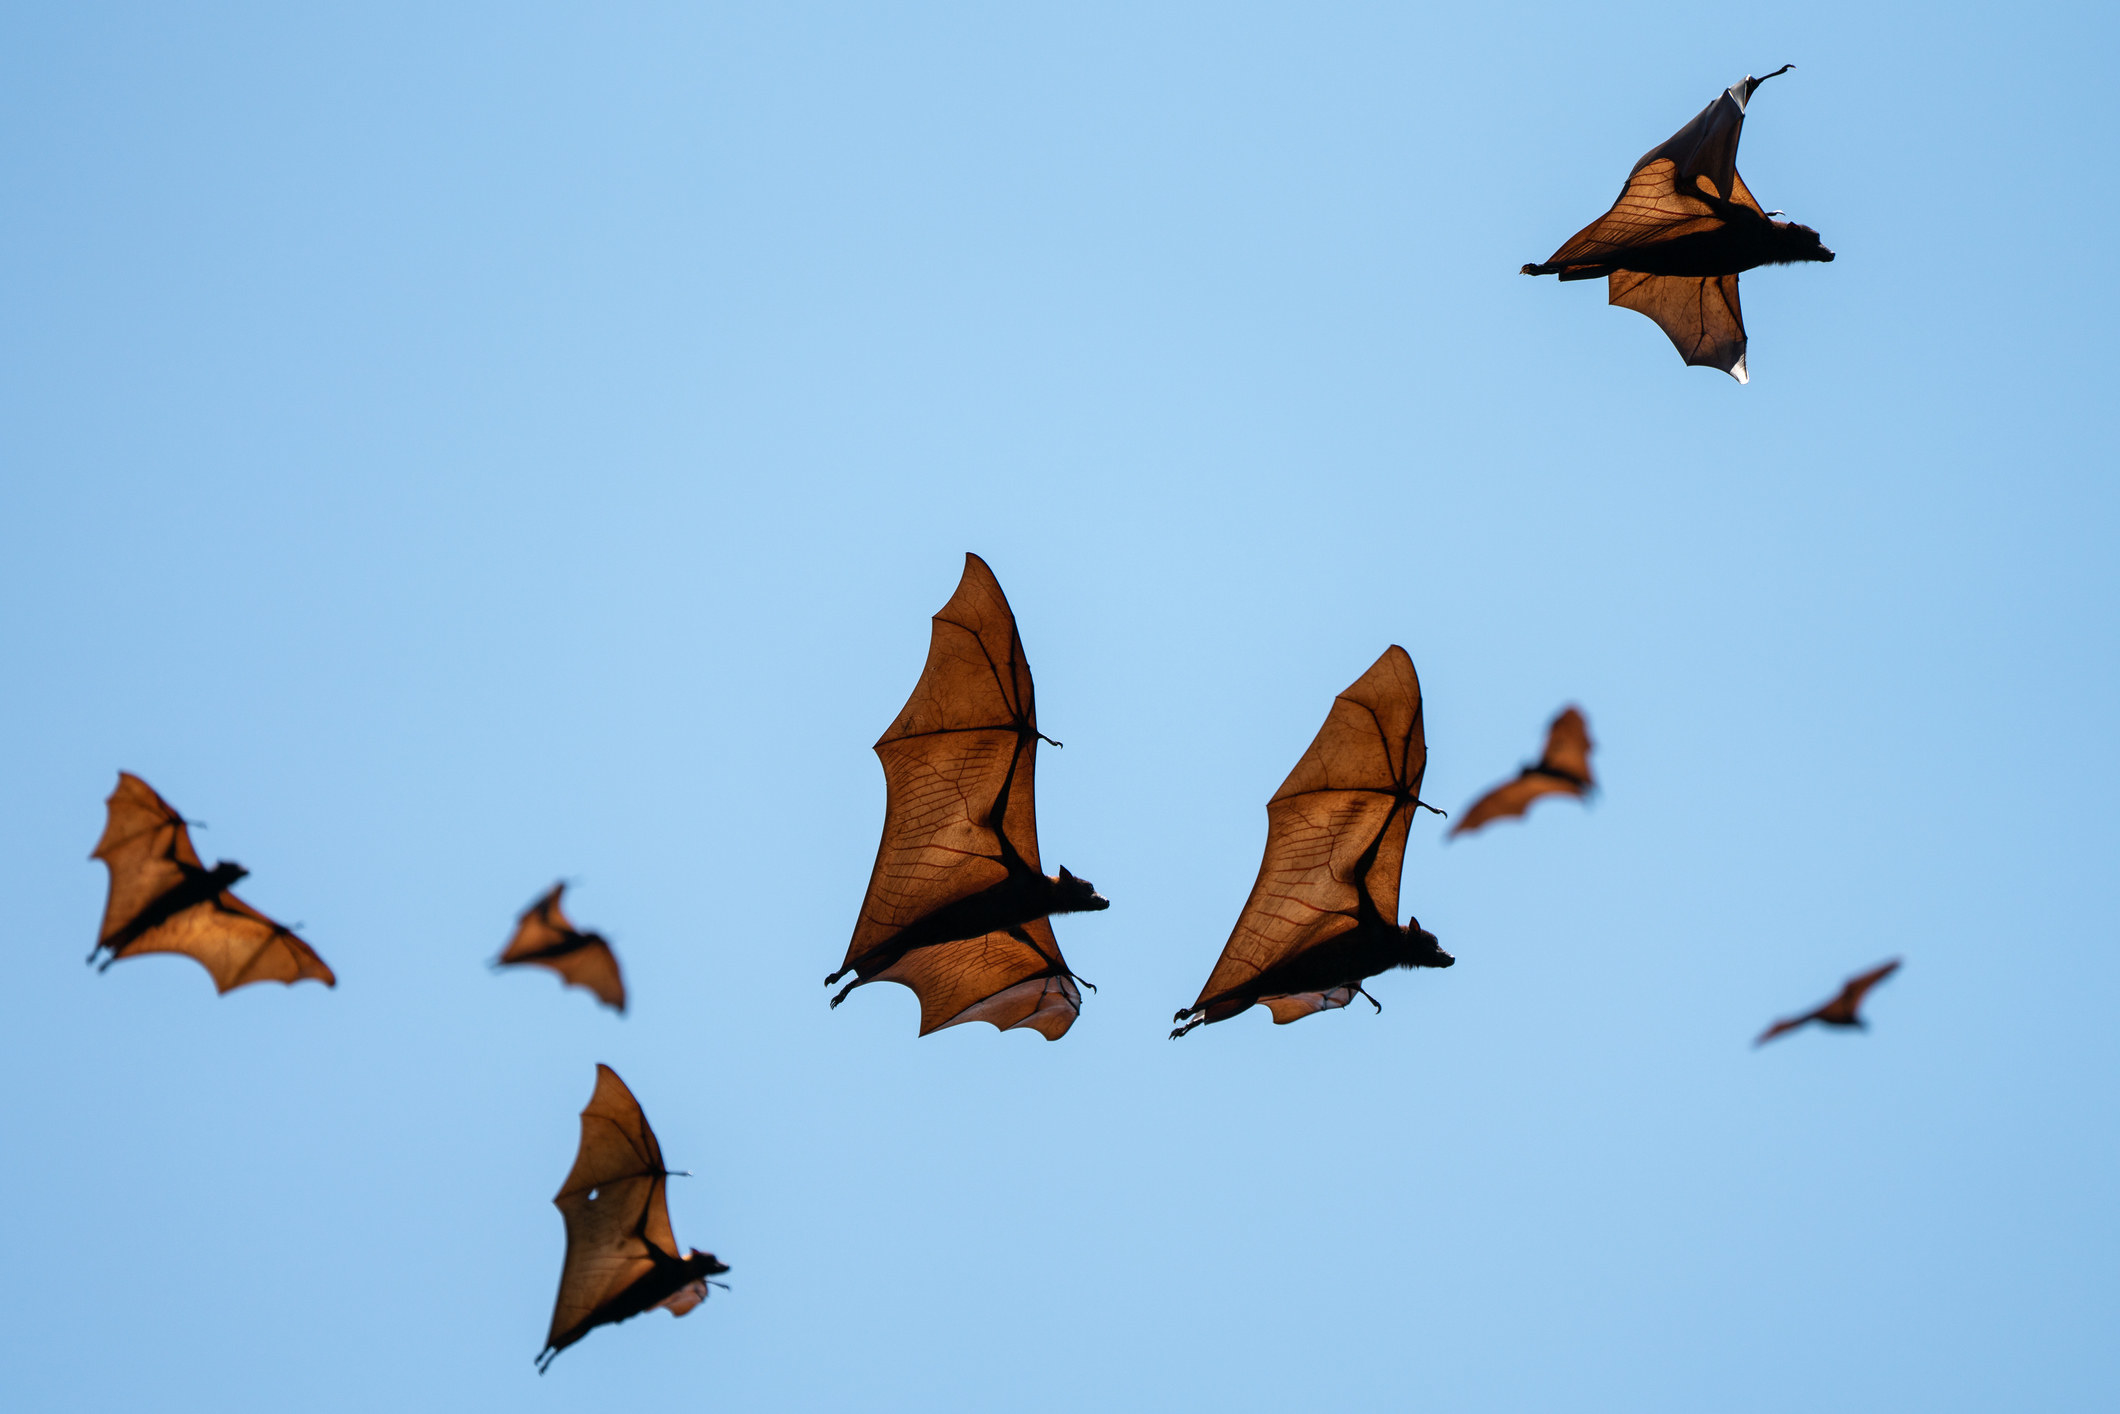 A group of bats flying